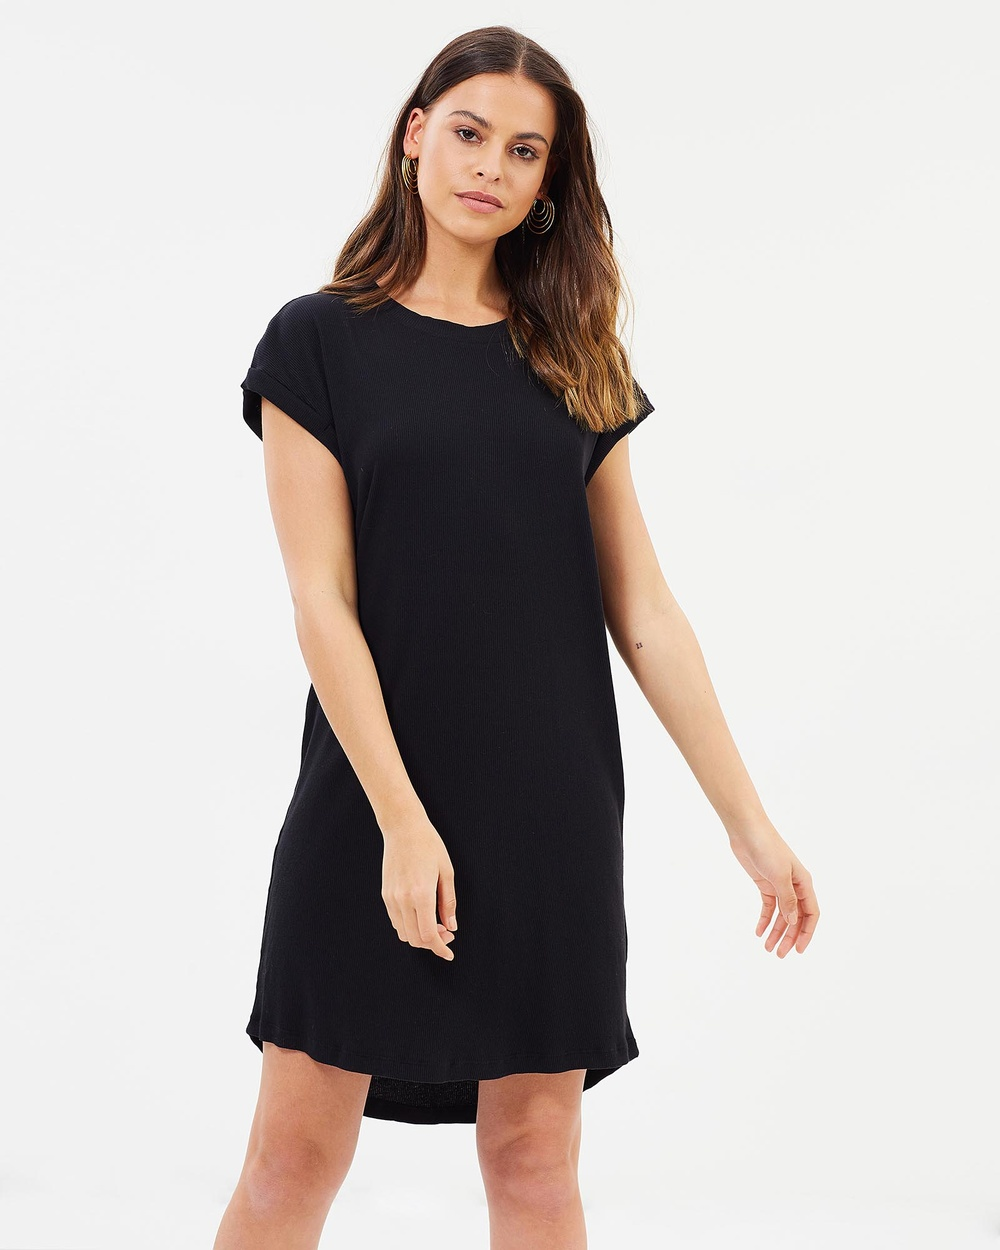 Rusty Windfall Rib Tee Dress Dresses Black Windfall Rib Tee Dress